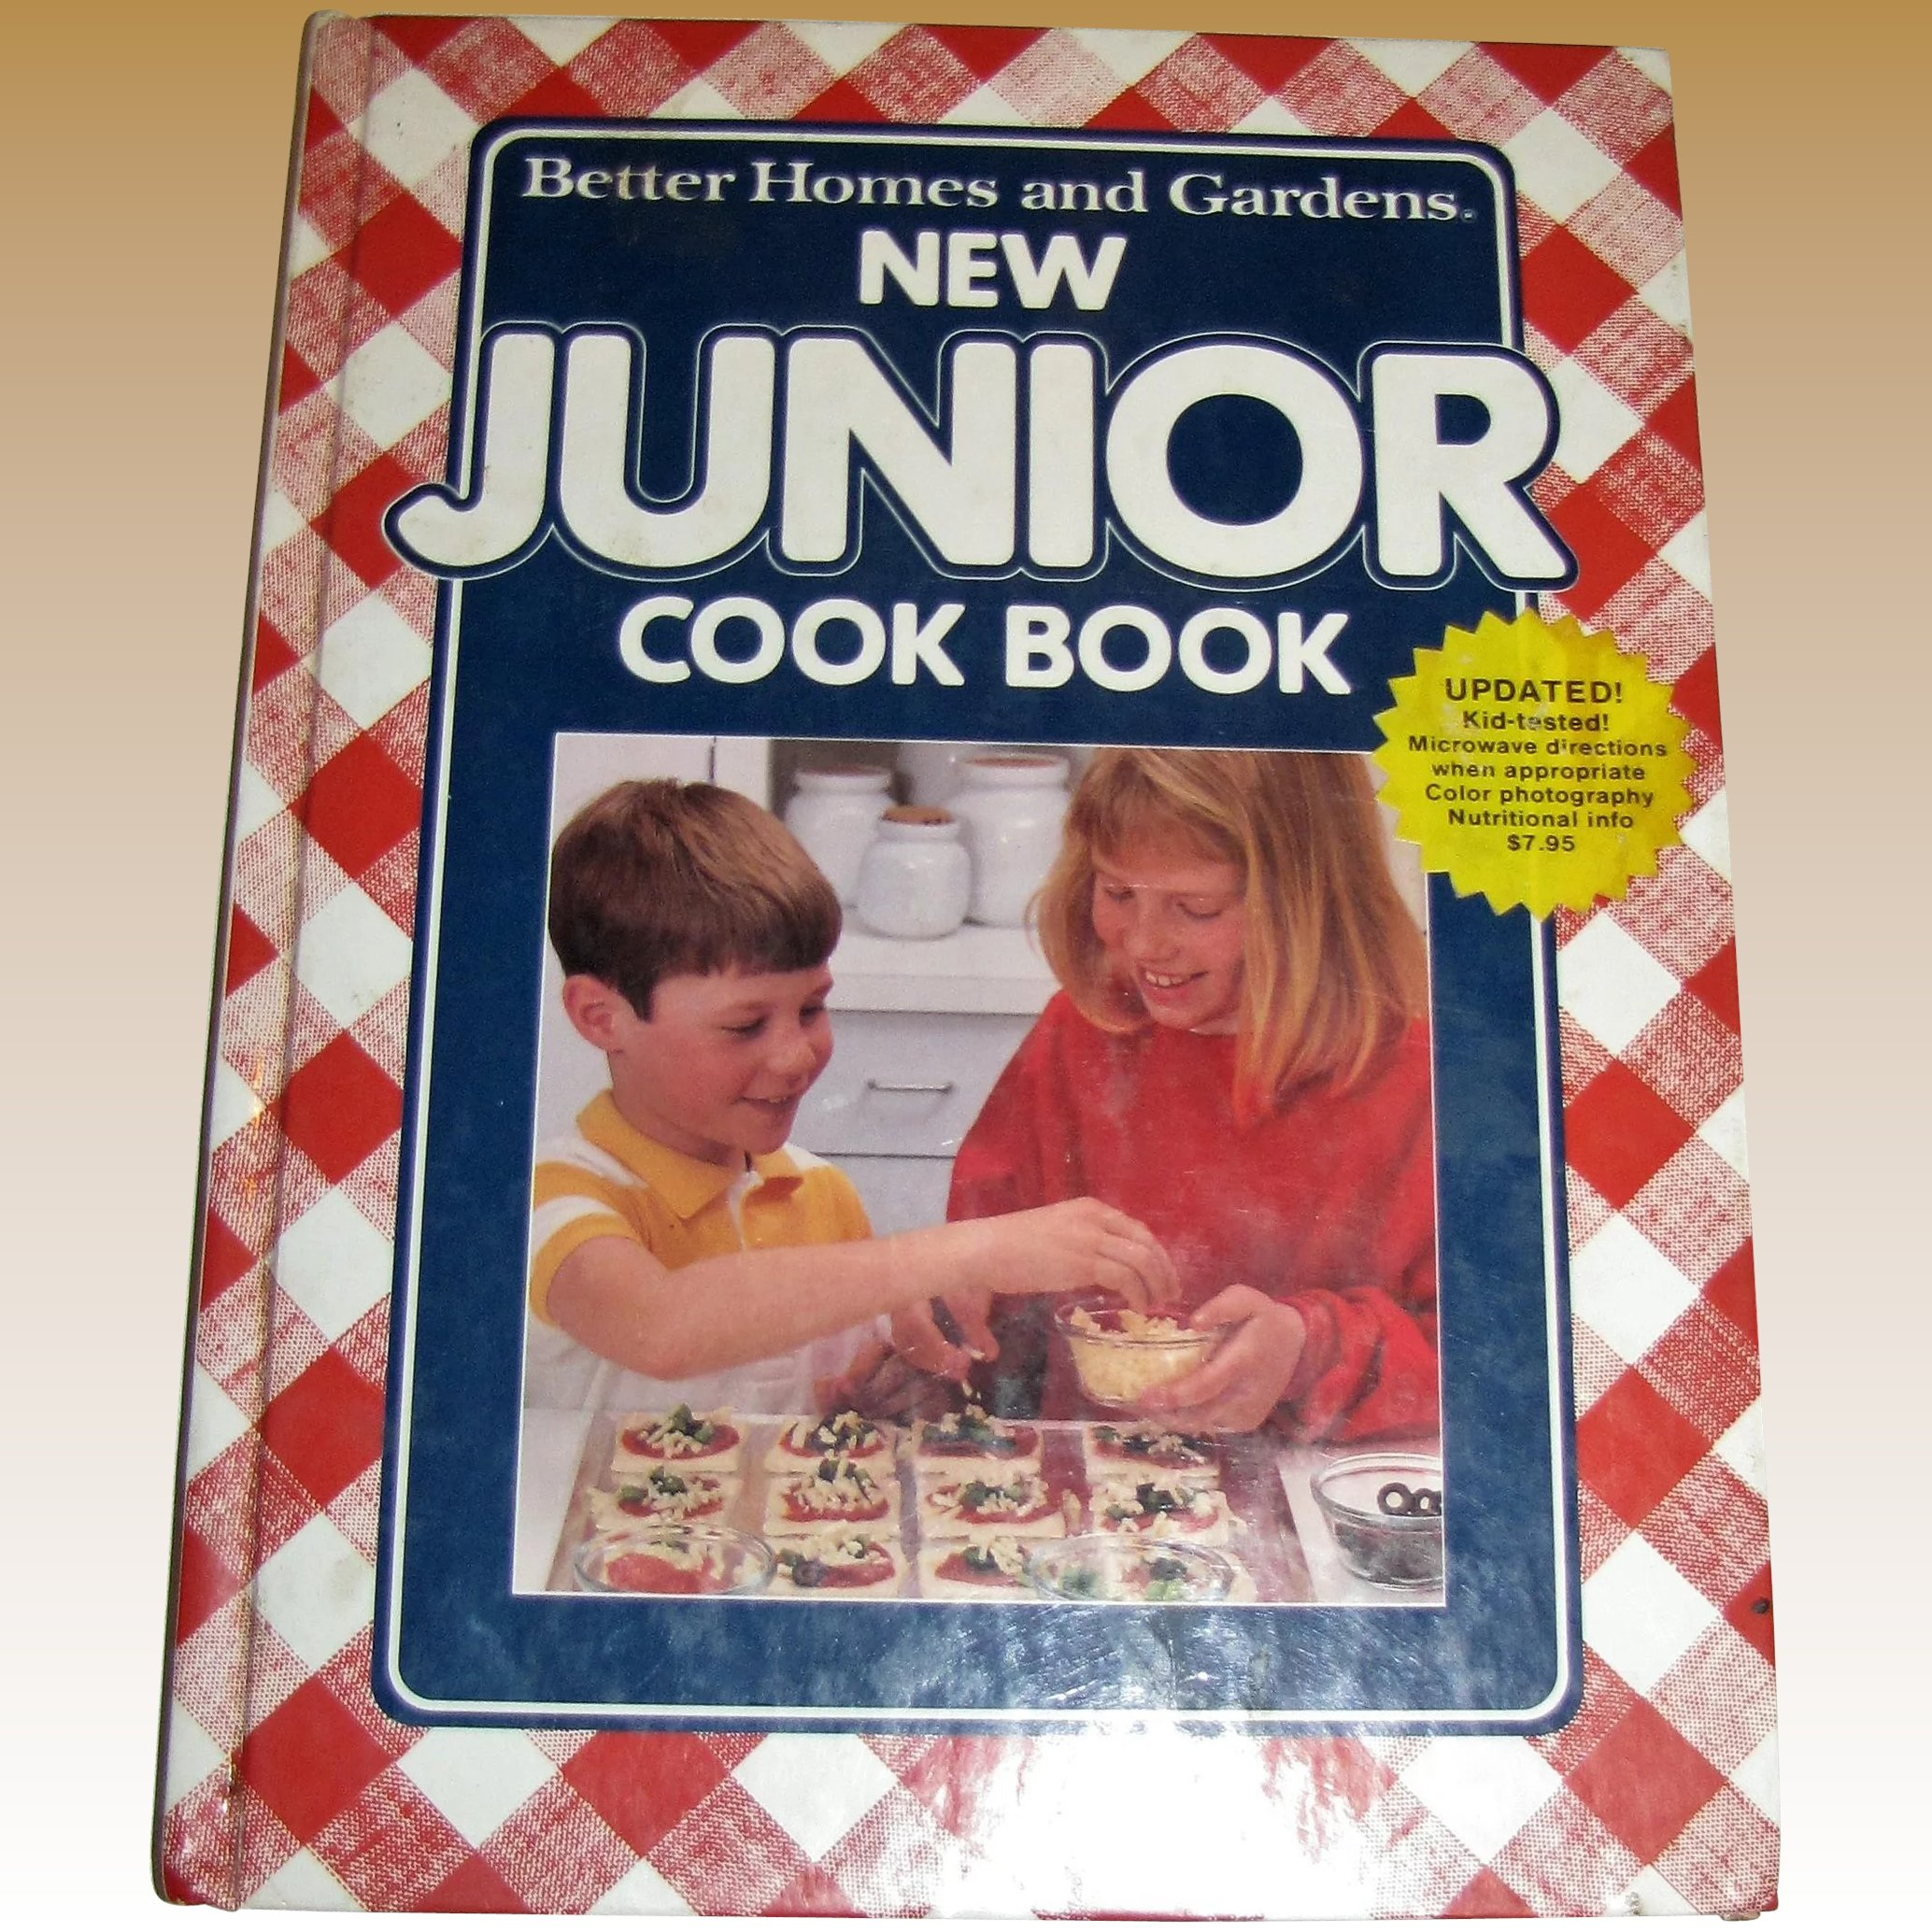 New Junior Cookbook By Better Homes And Gardens Hc 1991 Fay Wray Antiques Ruby Lane